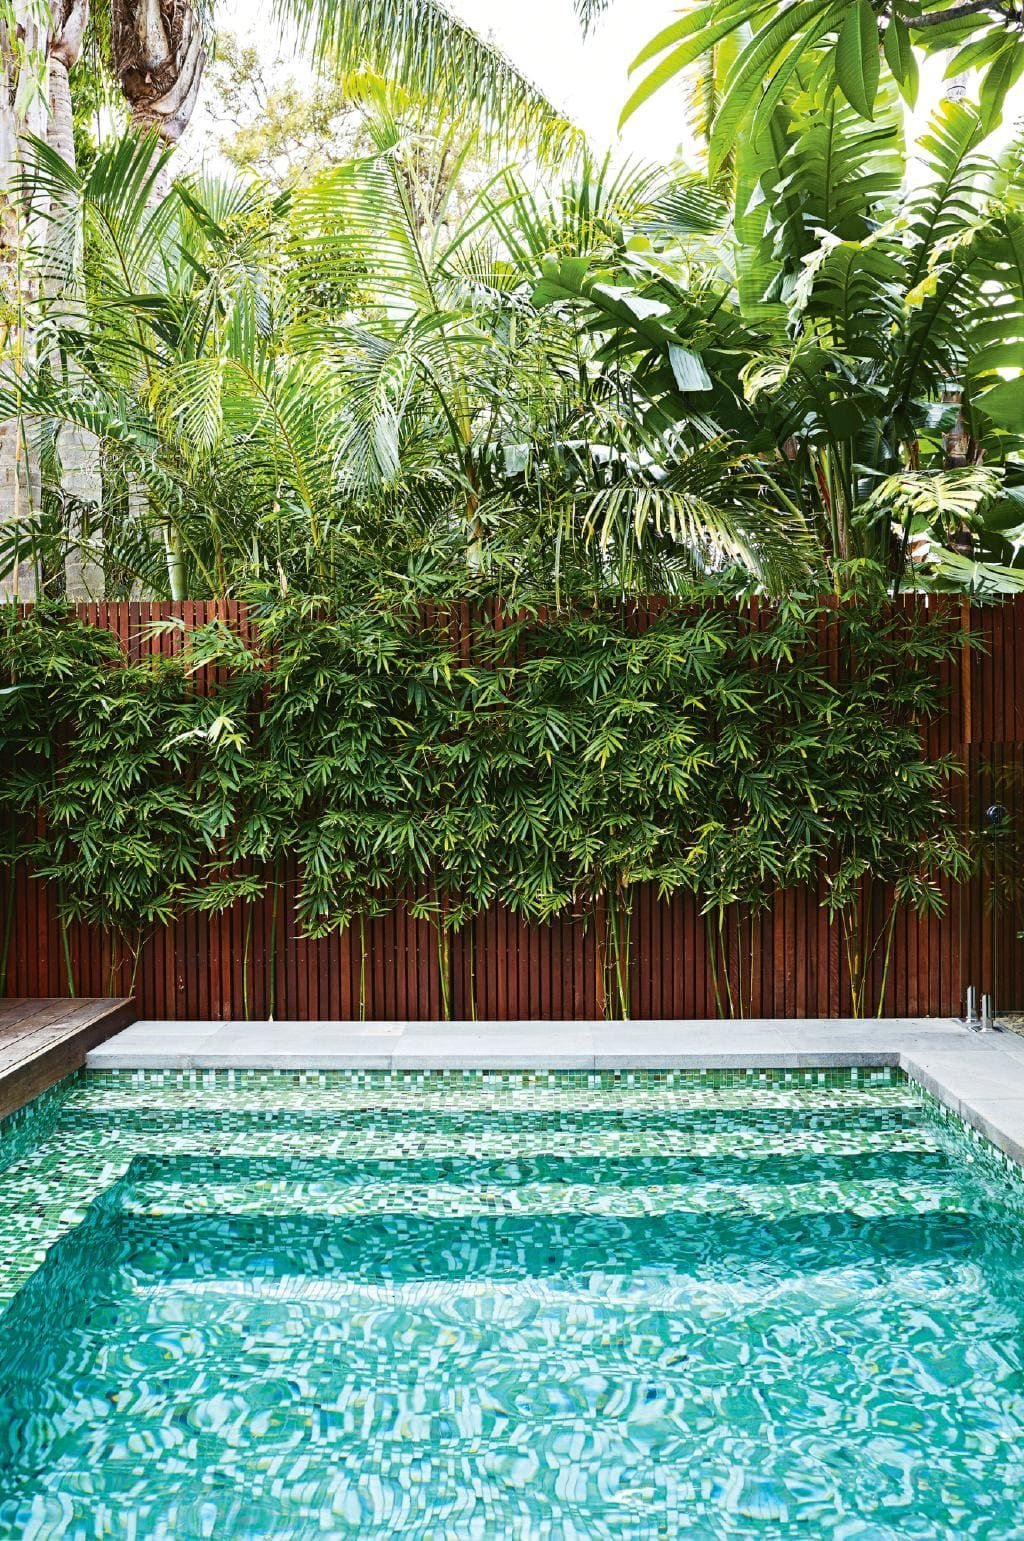 Backyard Paradise: This Compact Sydney Garden Is Inspired By Bali